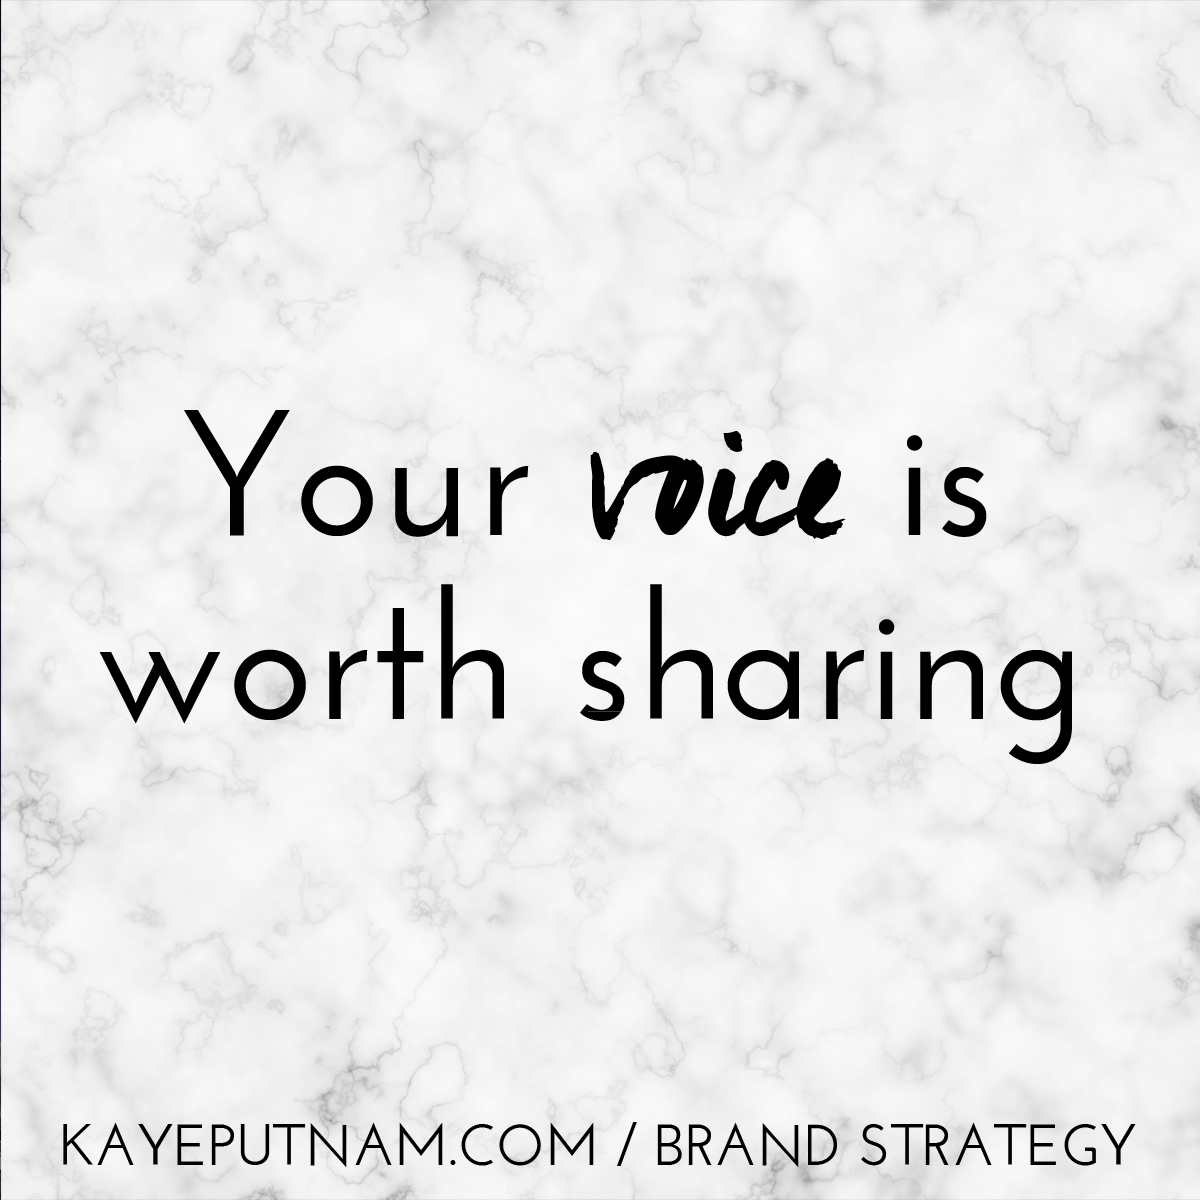 Your voice is worth sharing. #InDemandBrand